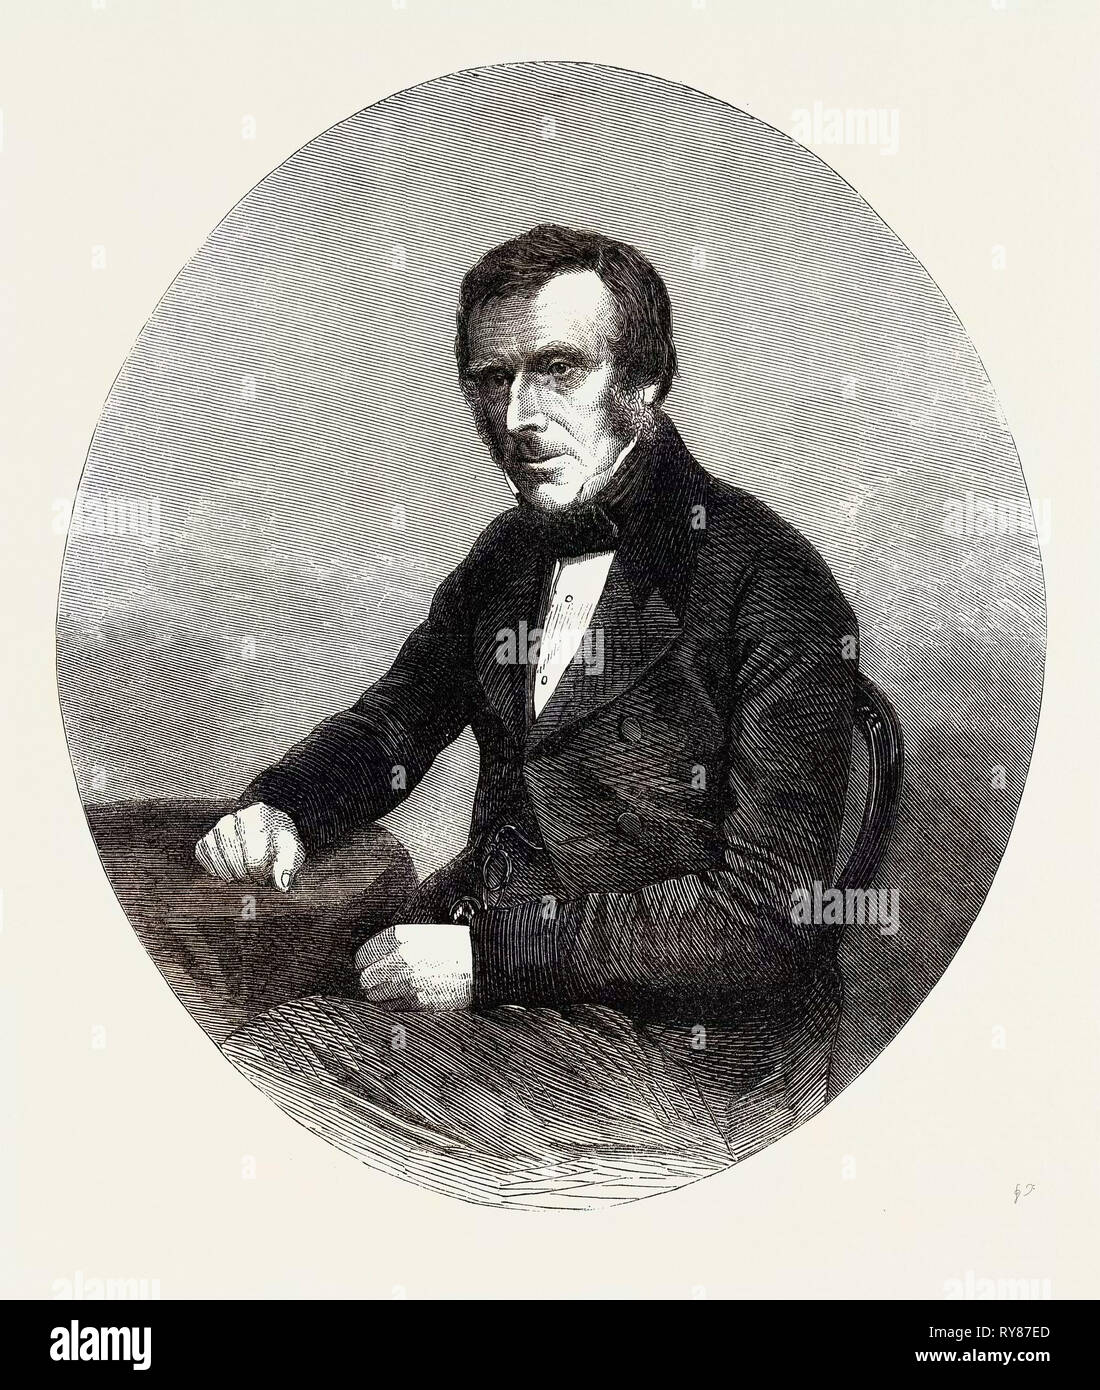 The Late Sir Benjamin Collins Brodie Bart. Serjeant-Surgeon to Queen Victoria - Stock Image